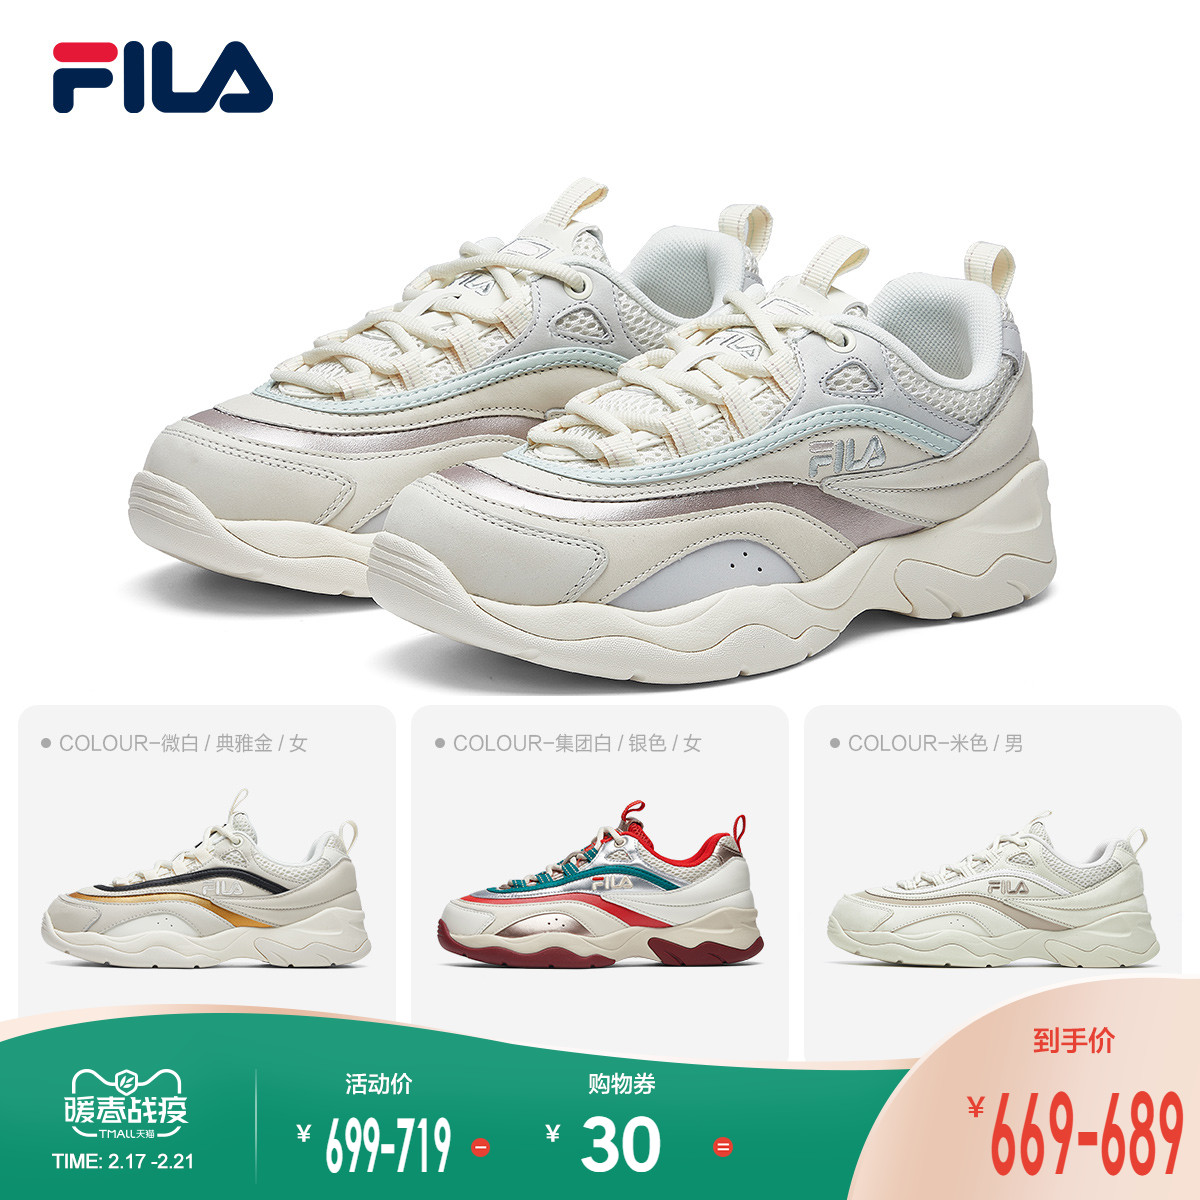 FILA FILA men's and women's shoes spring and summer ray couple men's and women's sports shoes light dad shoes autumn and winter